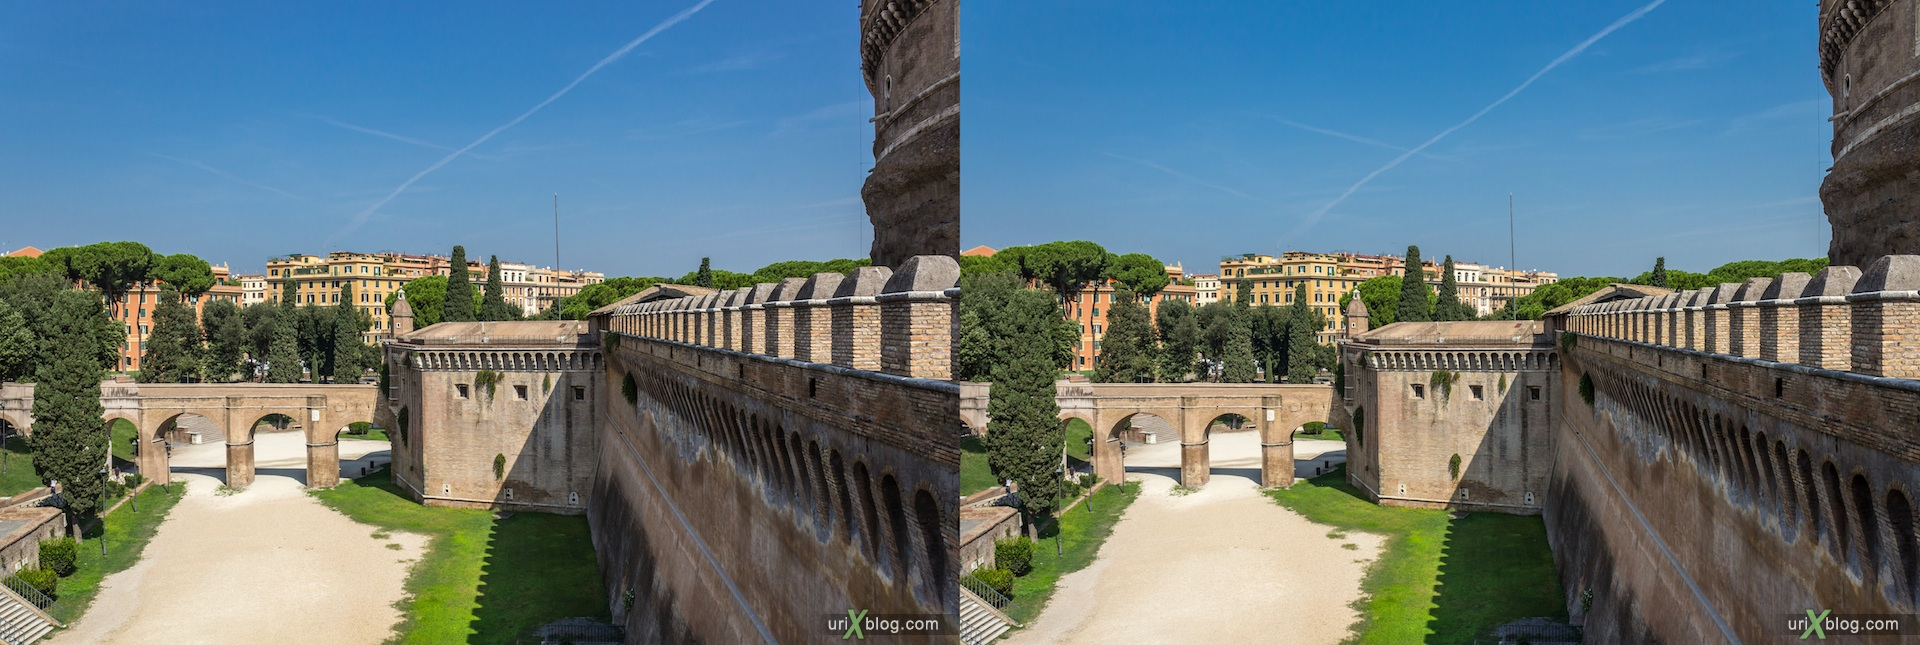 2012, Castel Sant Angelo, Mausoleum of Hadrian, 3D, stereo pair, cross-eyed, crossview, cross view stereo pair